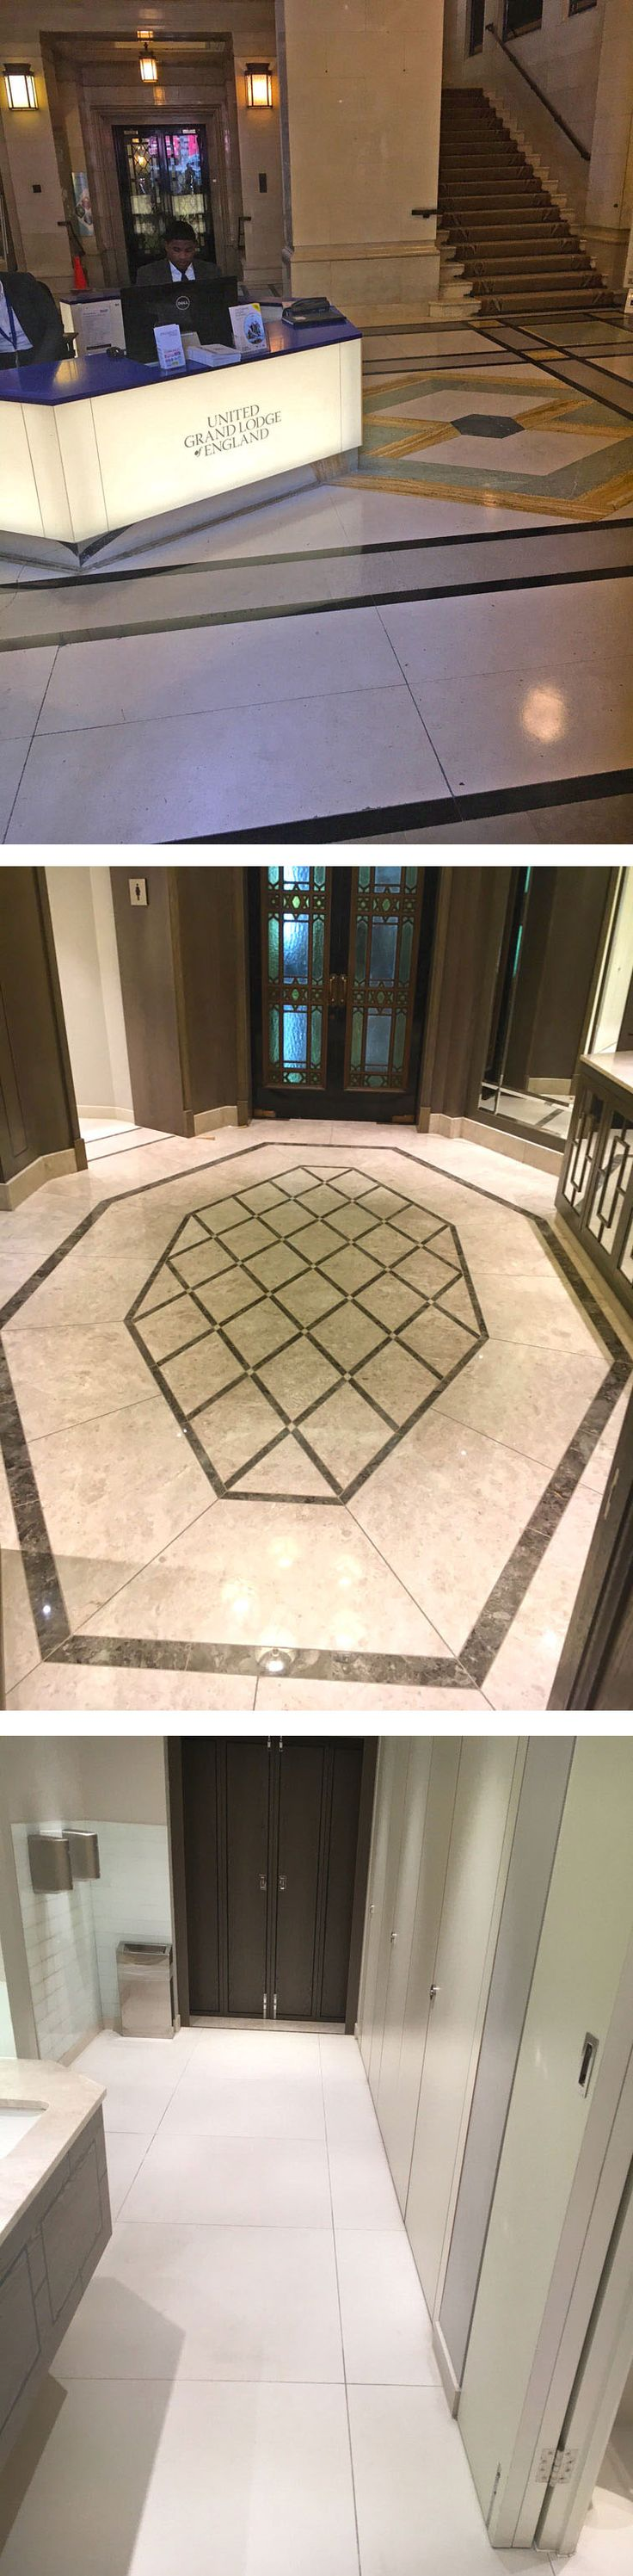 Mapei adhesive and grout products have been specified for the installation of a stone pattern in the reception and washroom areas in a refurbishment to the Freemasons' Hall, London. The Hall first opened in 1933 as a memorial to the 3,255 Freemasons who died during active service in the First World War. www.mapei.co.uk https://issuu.com/link2media/docs/bi_oct_16_iss4_issuu/36